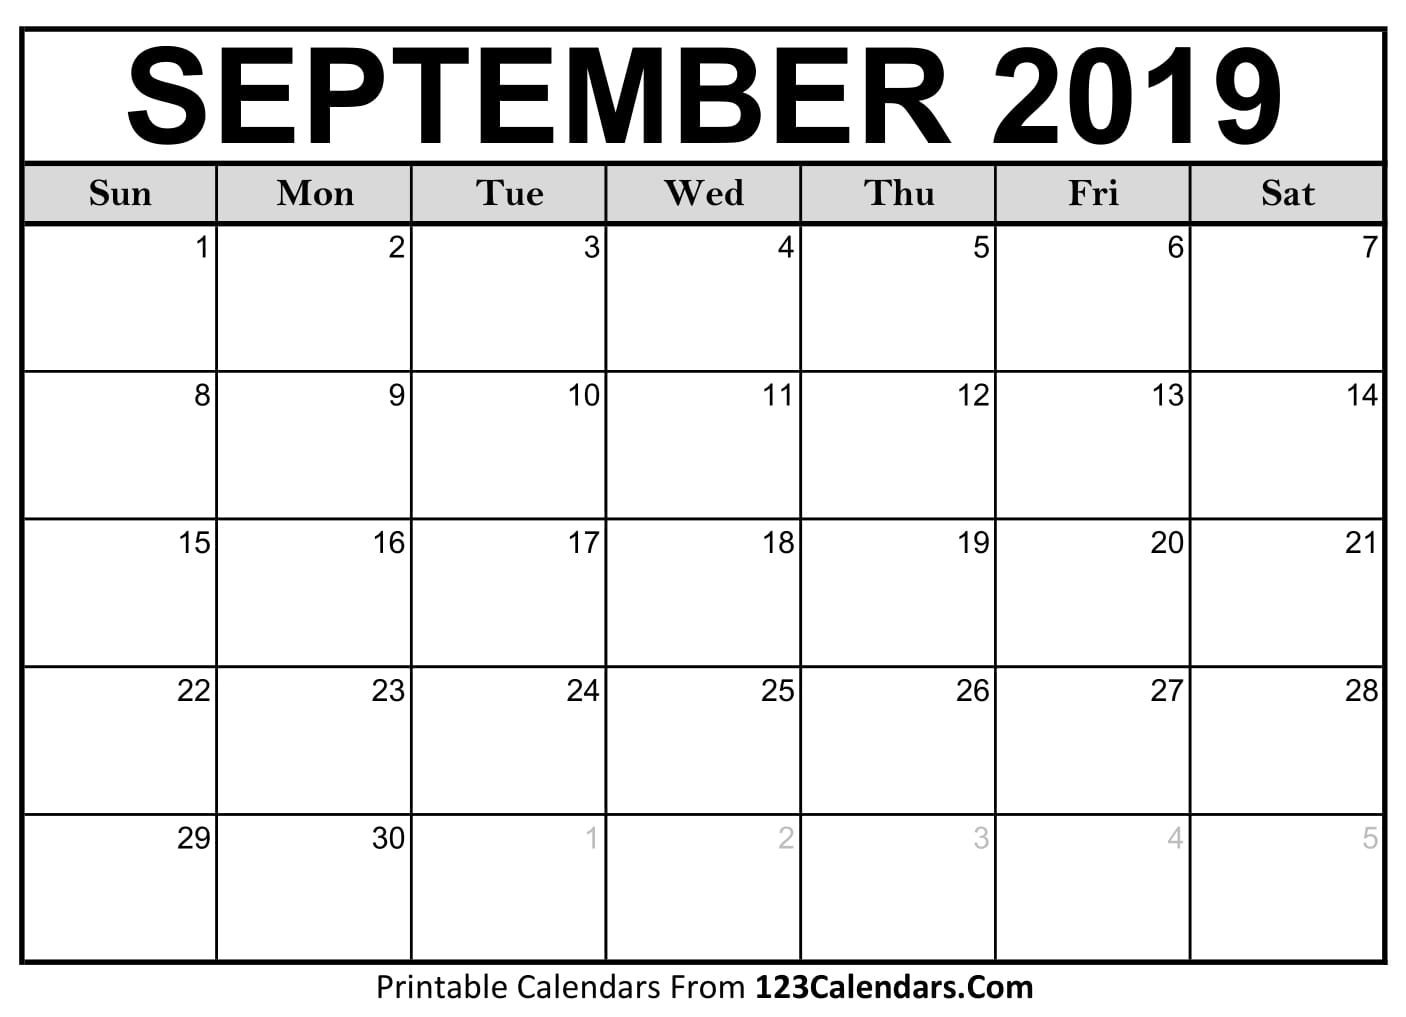 photo relating to Calendar for Printable referred to as September 2019 Printable Calendar